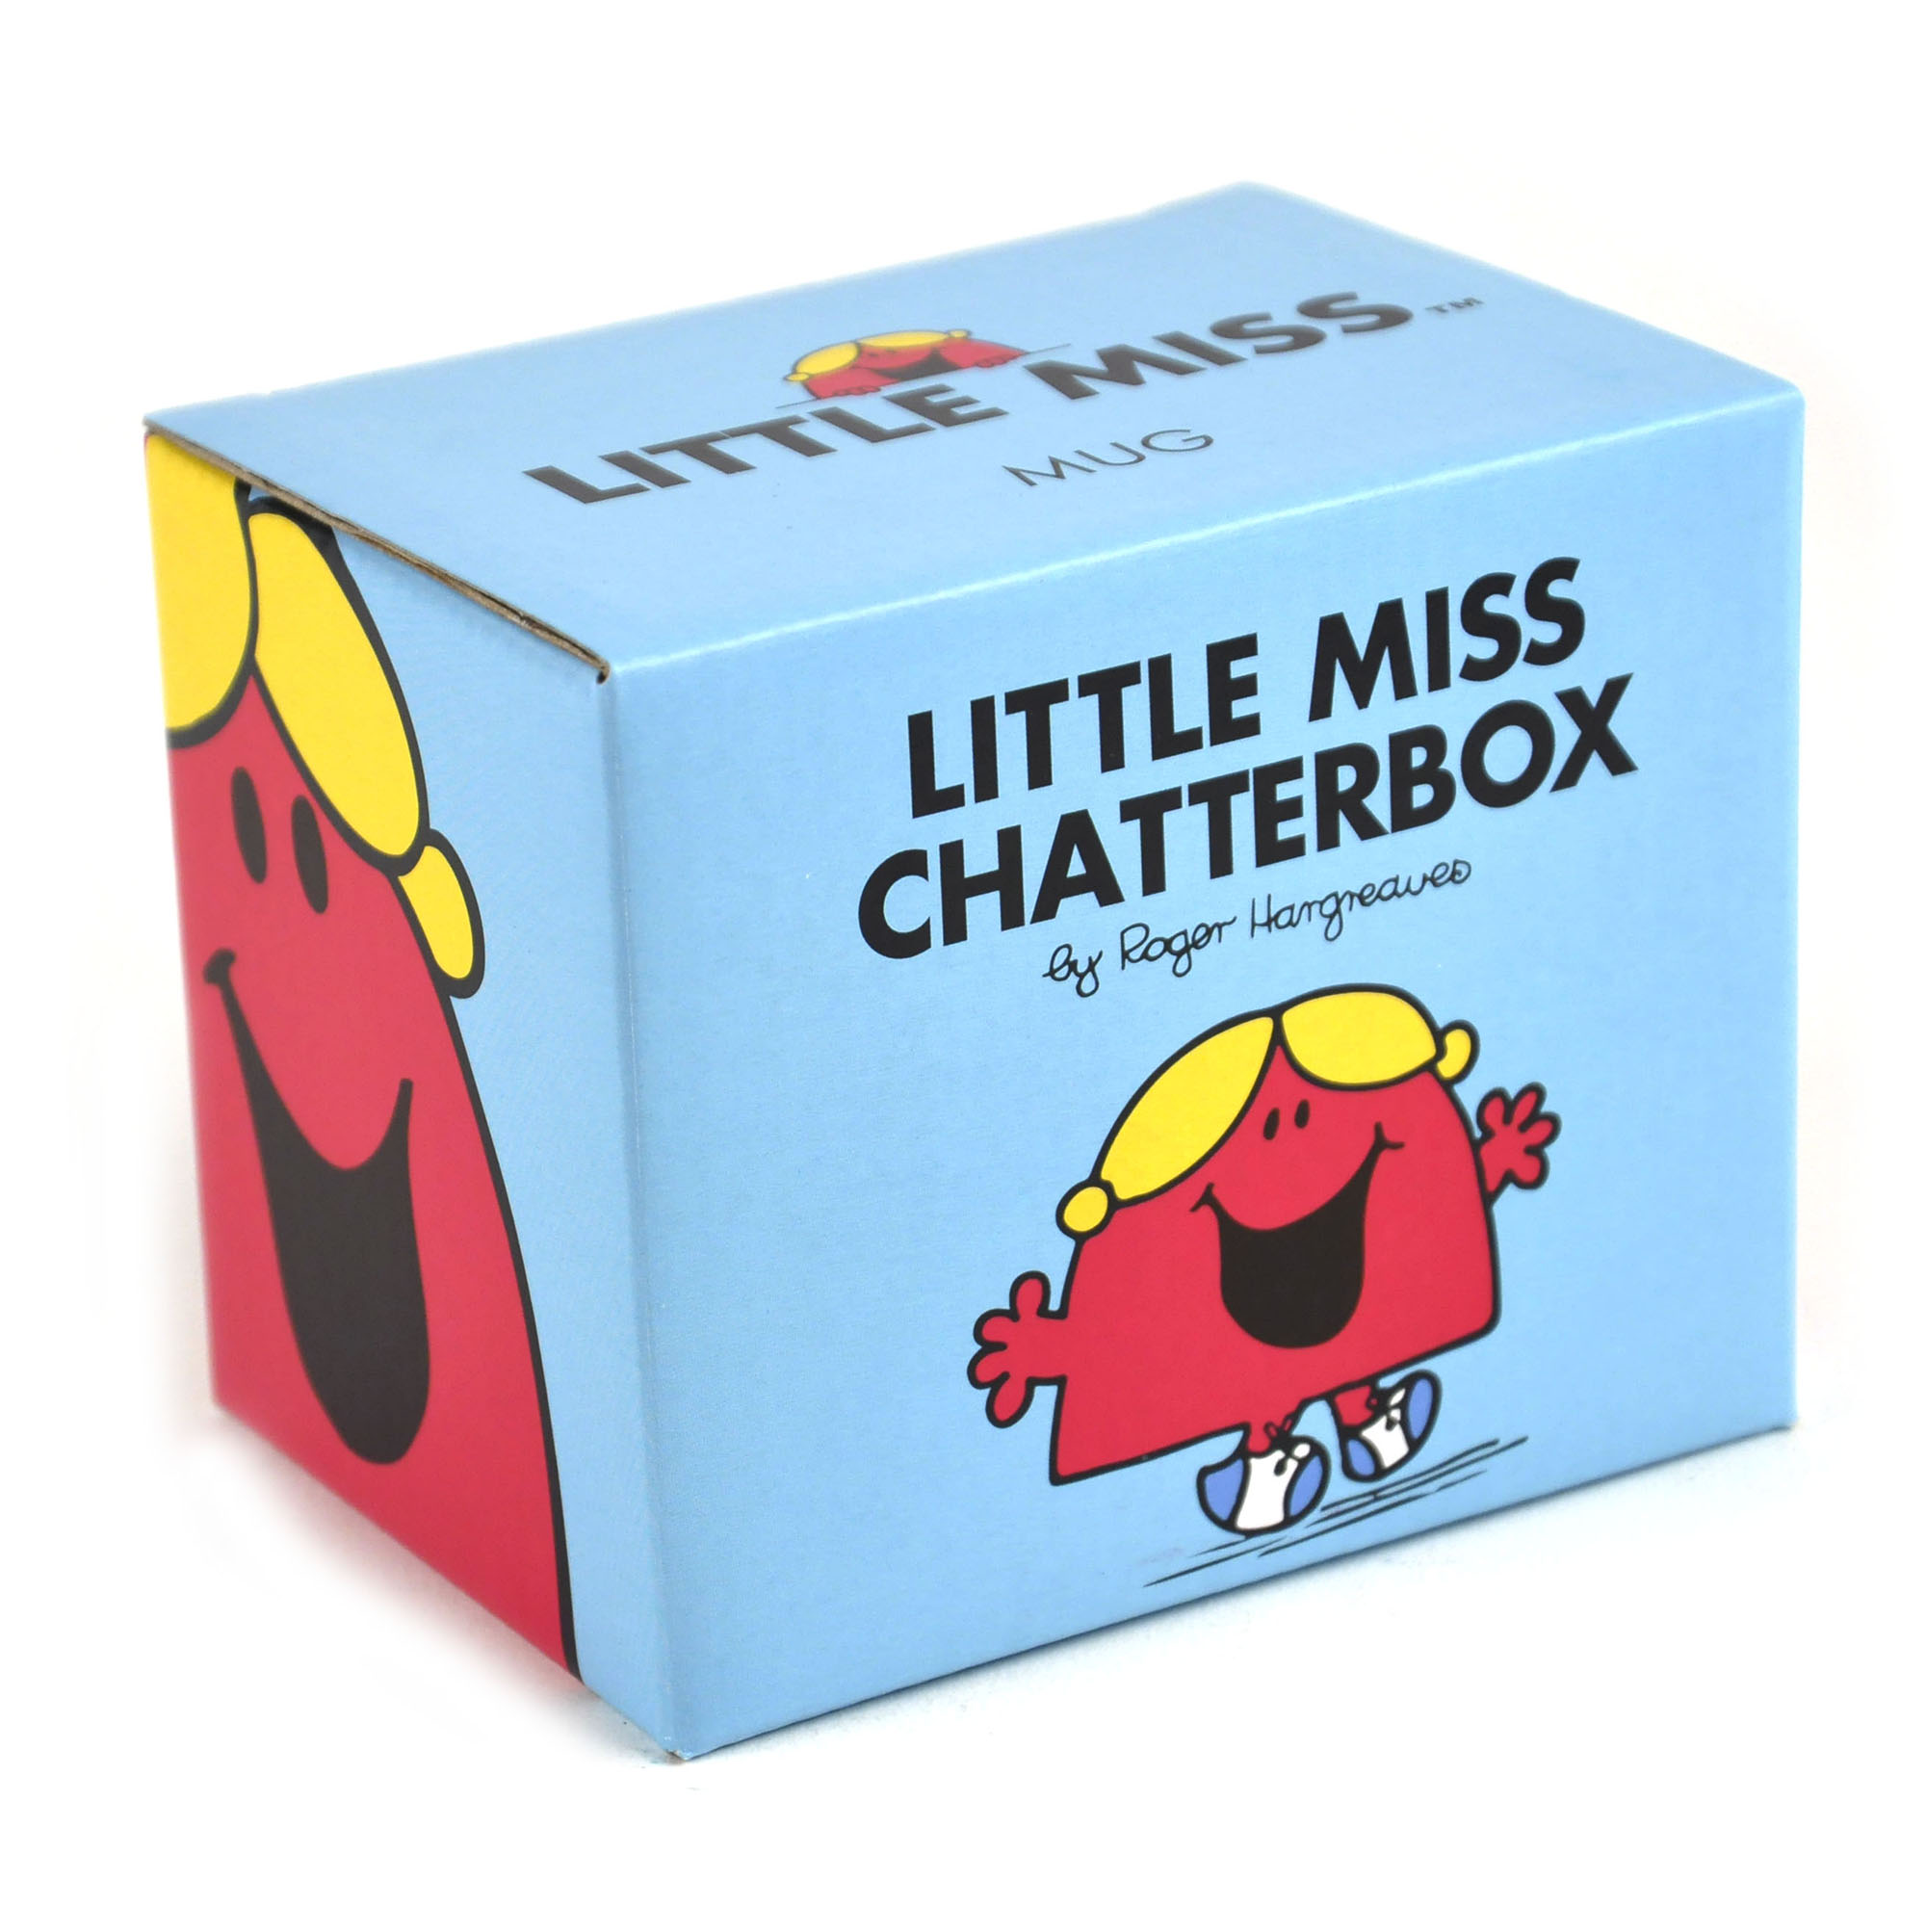 Little Miss Chatterbox 2 Mugs - Hot Girls Wallpaper